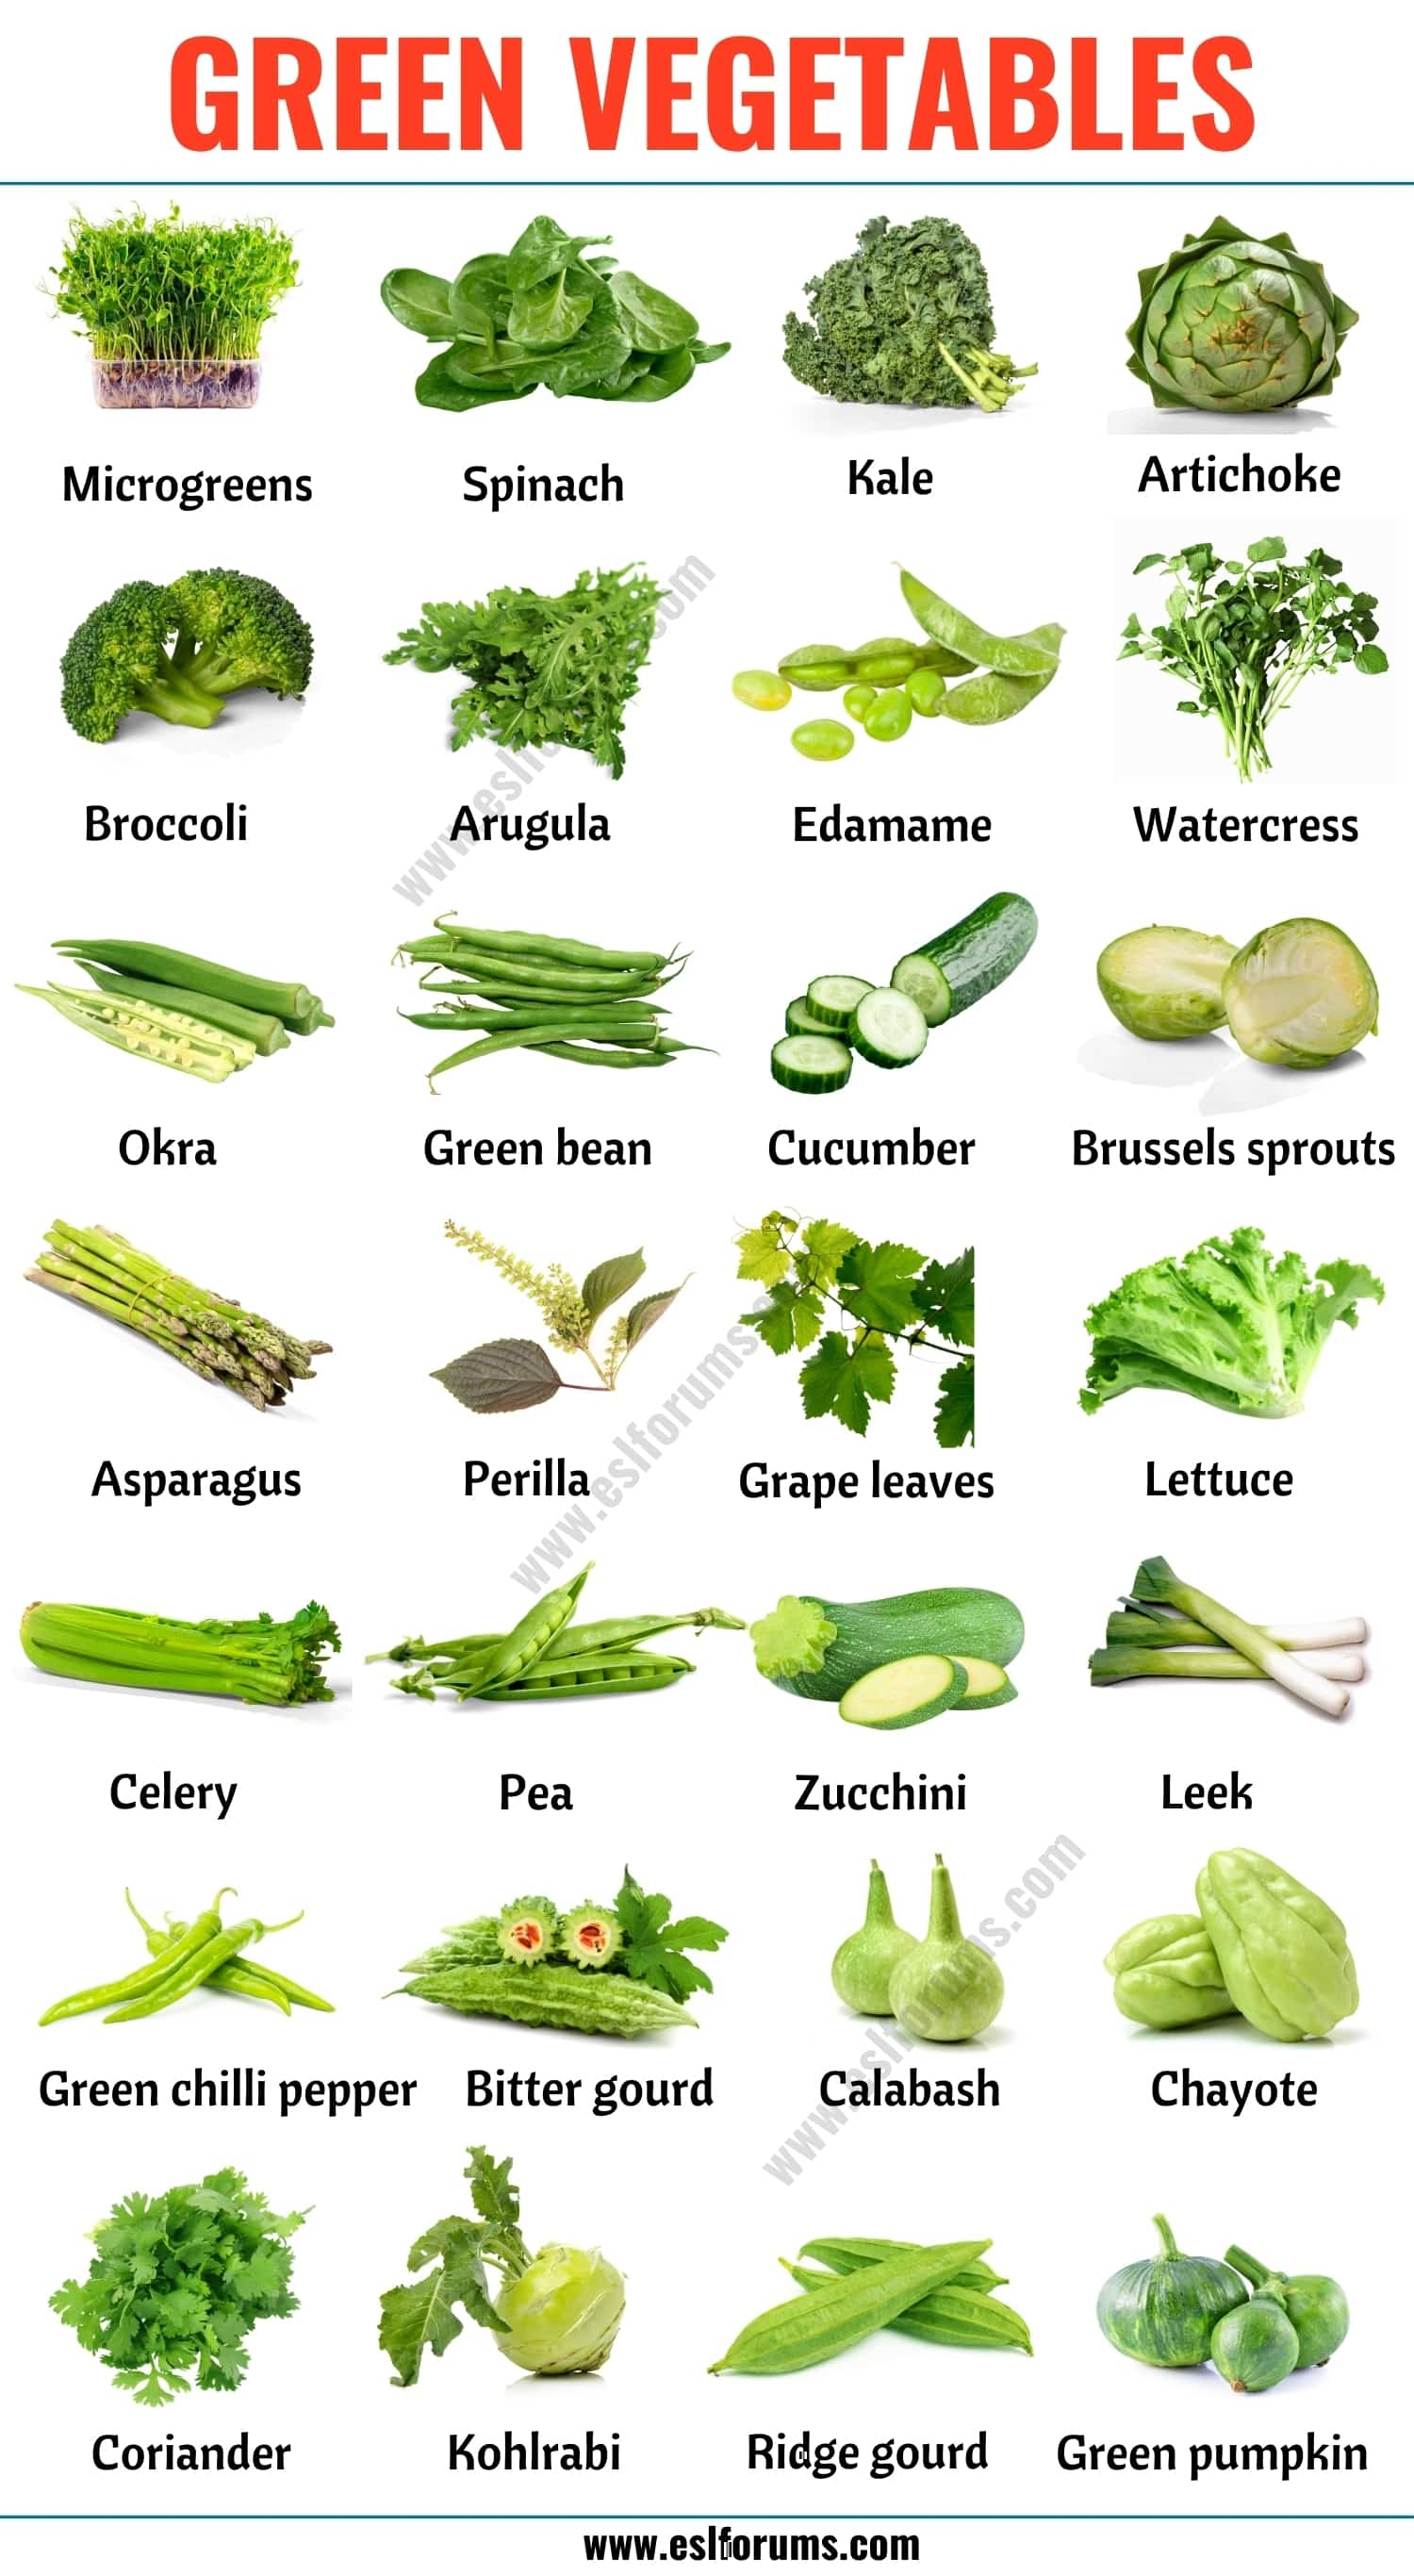 Green Vegetables: List of 28 Green Vegetables in English with ESL Picture!